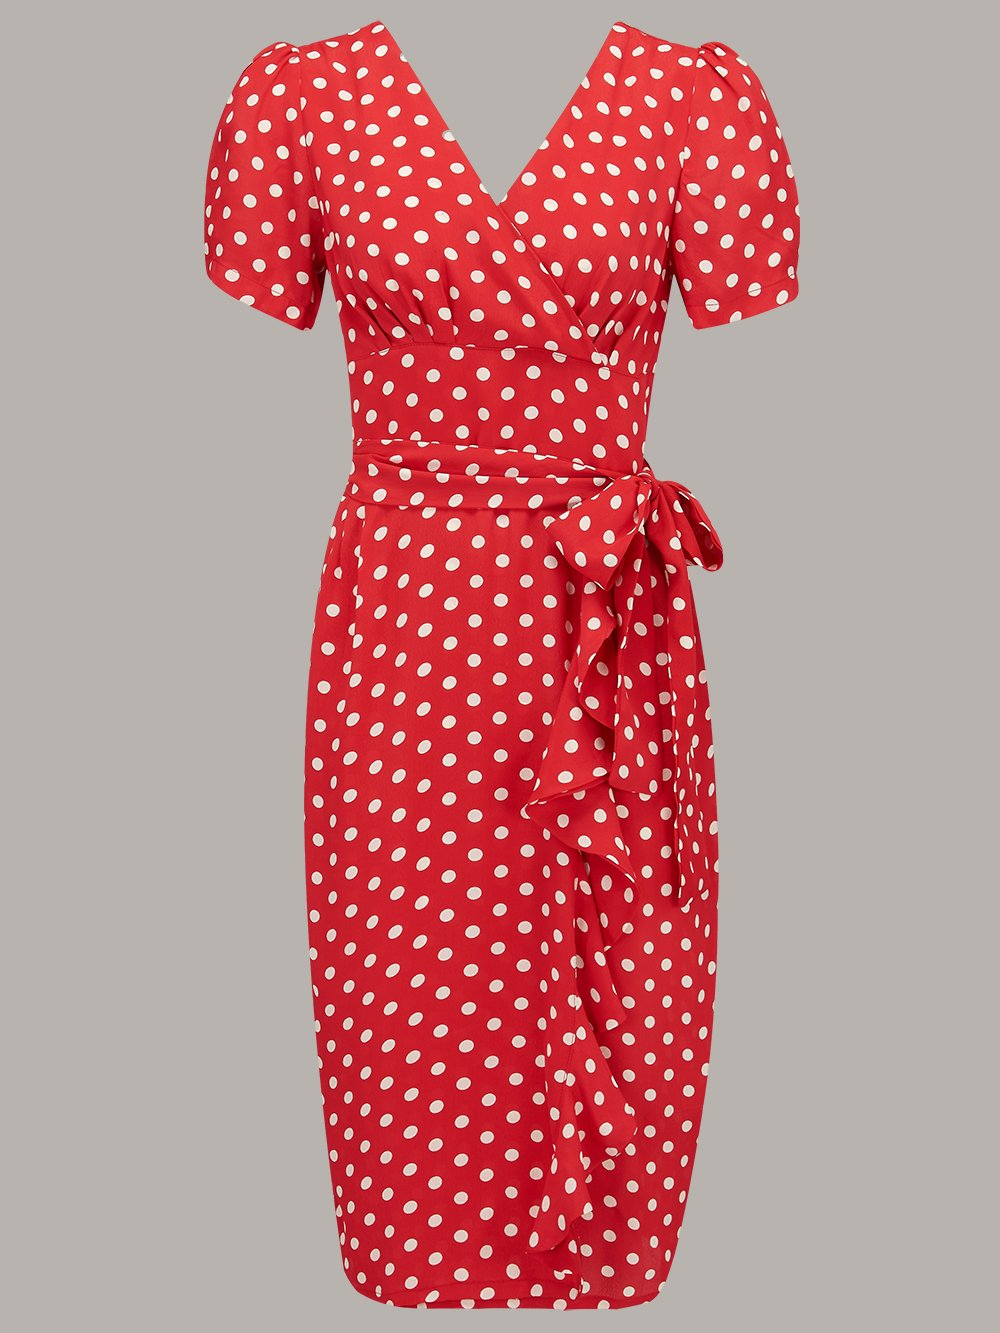 1940s Dress Styles Lilian Dress in Red with Polka Dot Spot Classic  Authentic 1940s Vintage Style £89.00 AT vintagedancer.com